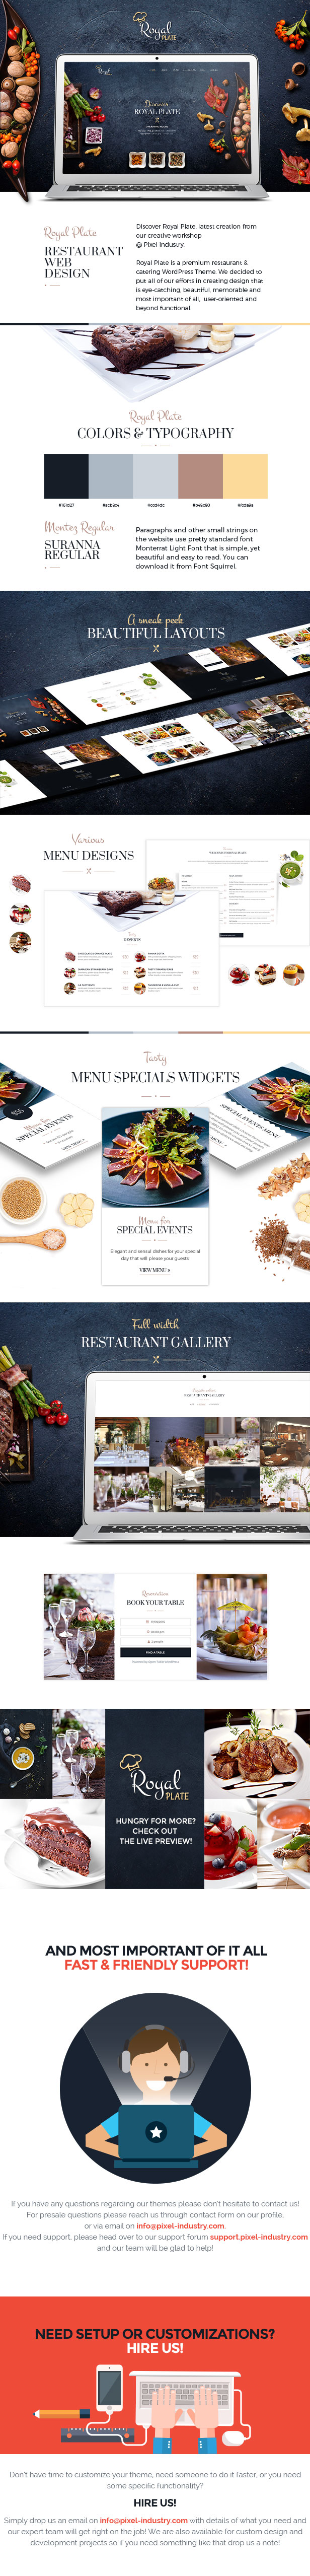 Royal Plate – Restaurant and Catering WordPress Theme (Restaurants &amp Cafes)